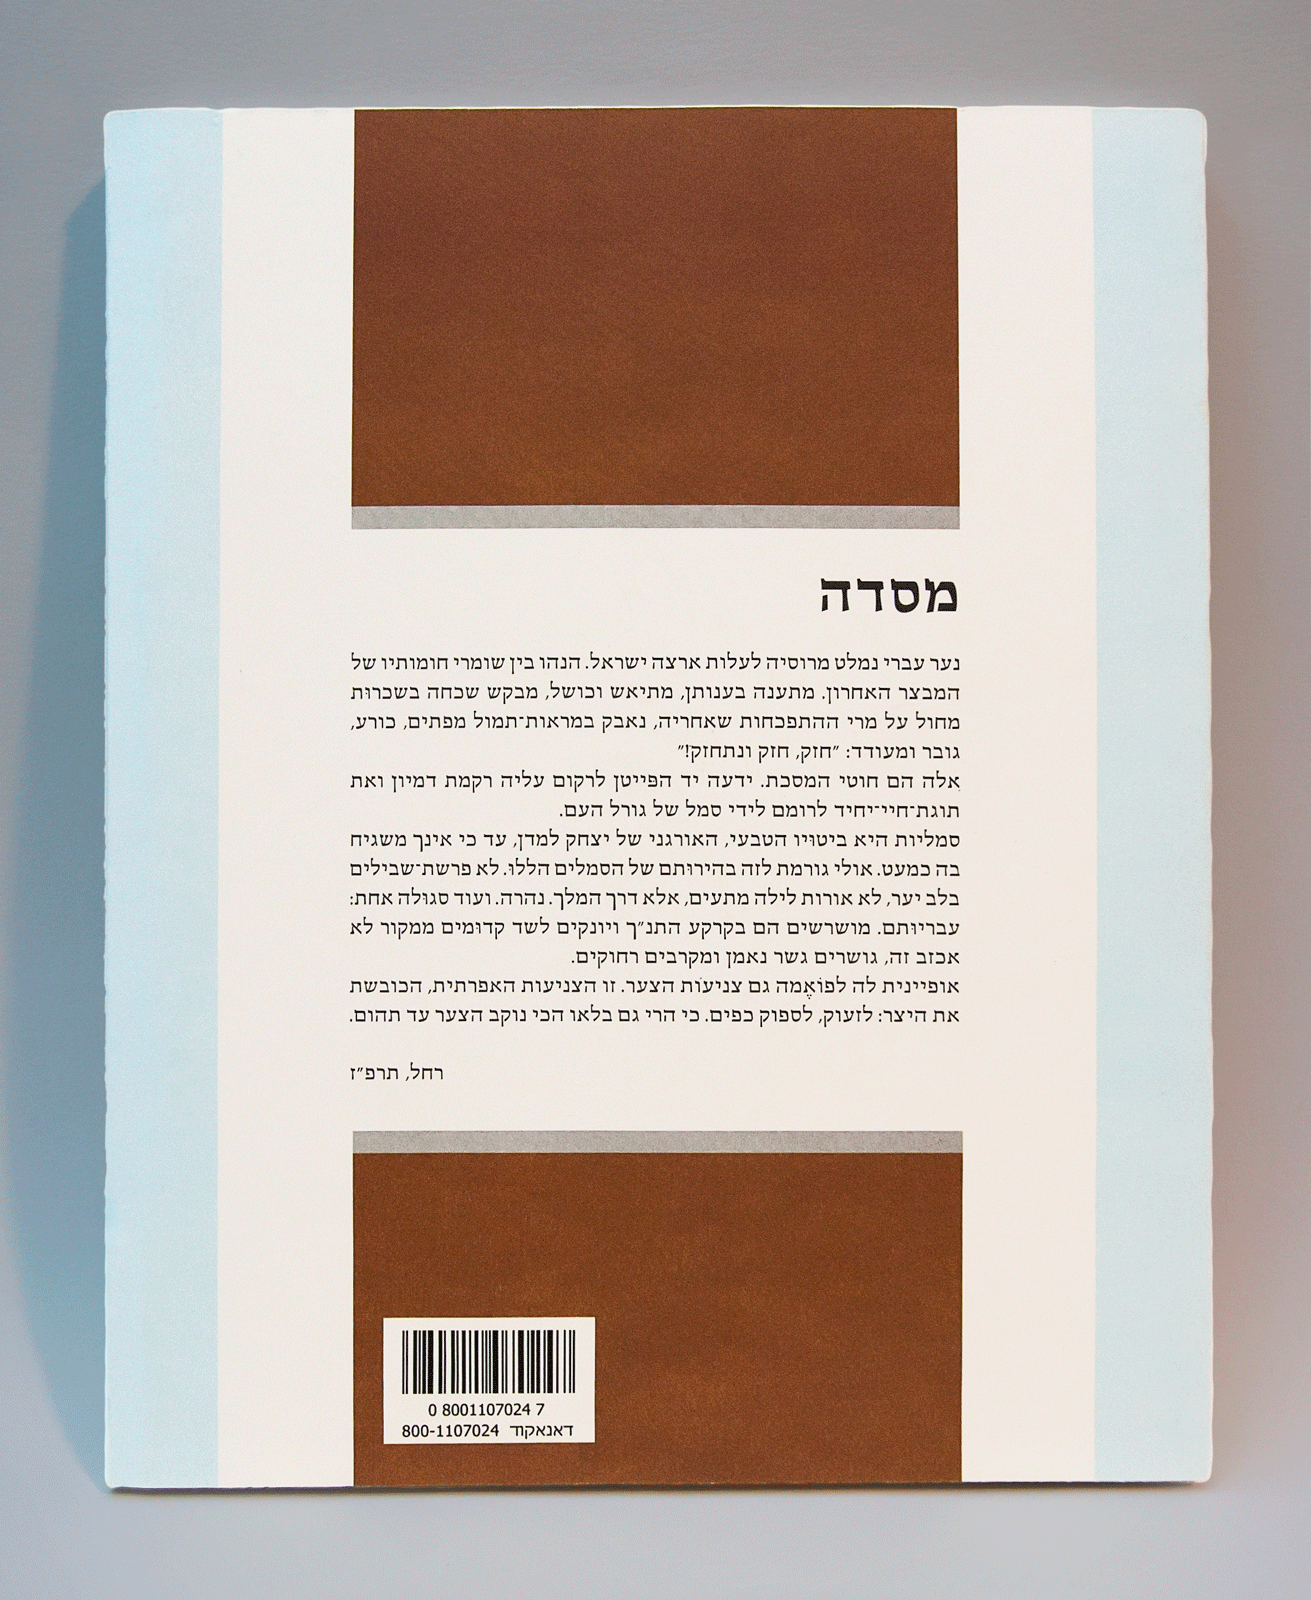 https://bigeyes.co.il/wp-content/uploads/2019/04/masada-back.png